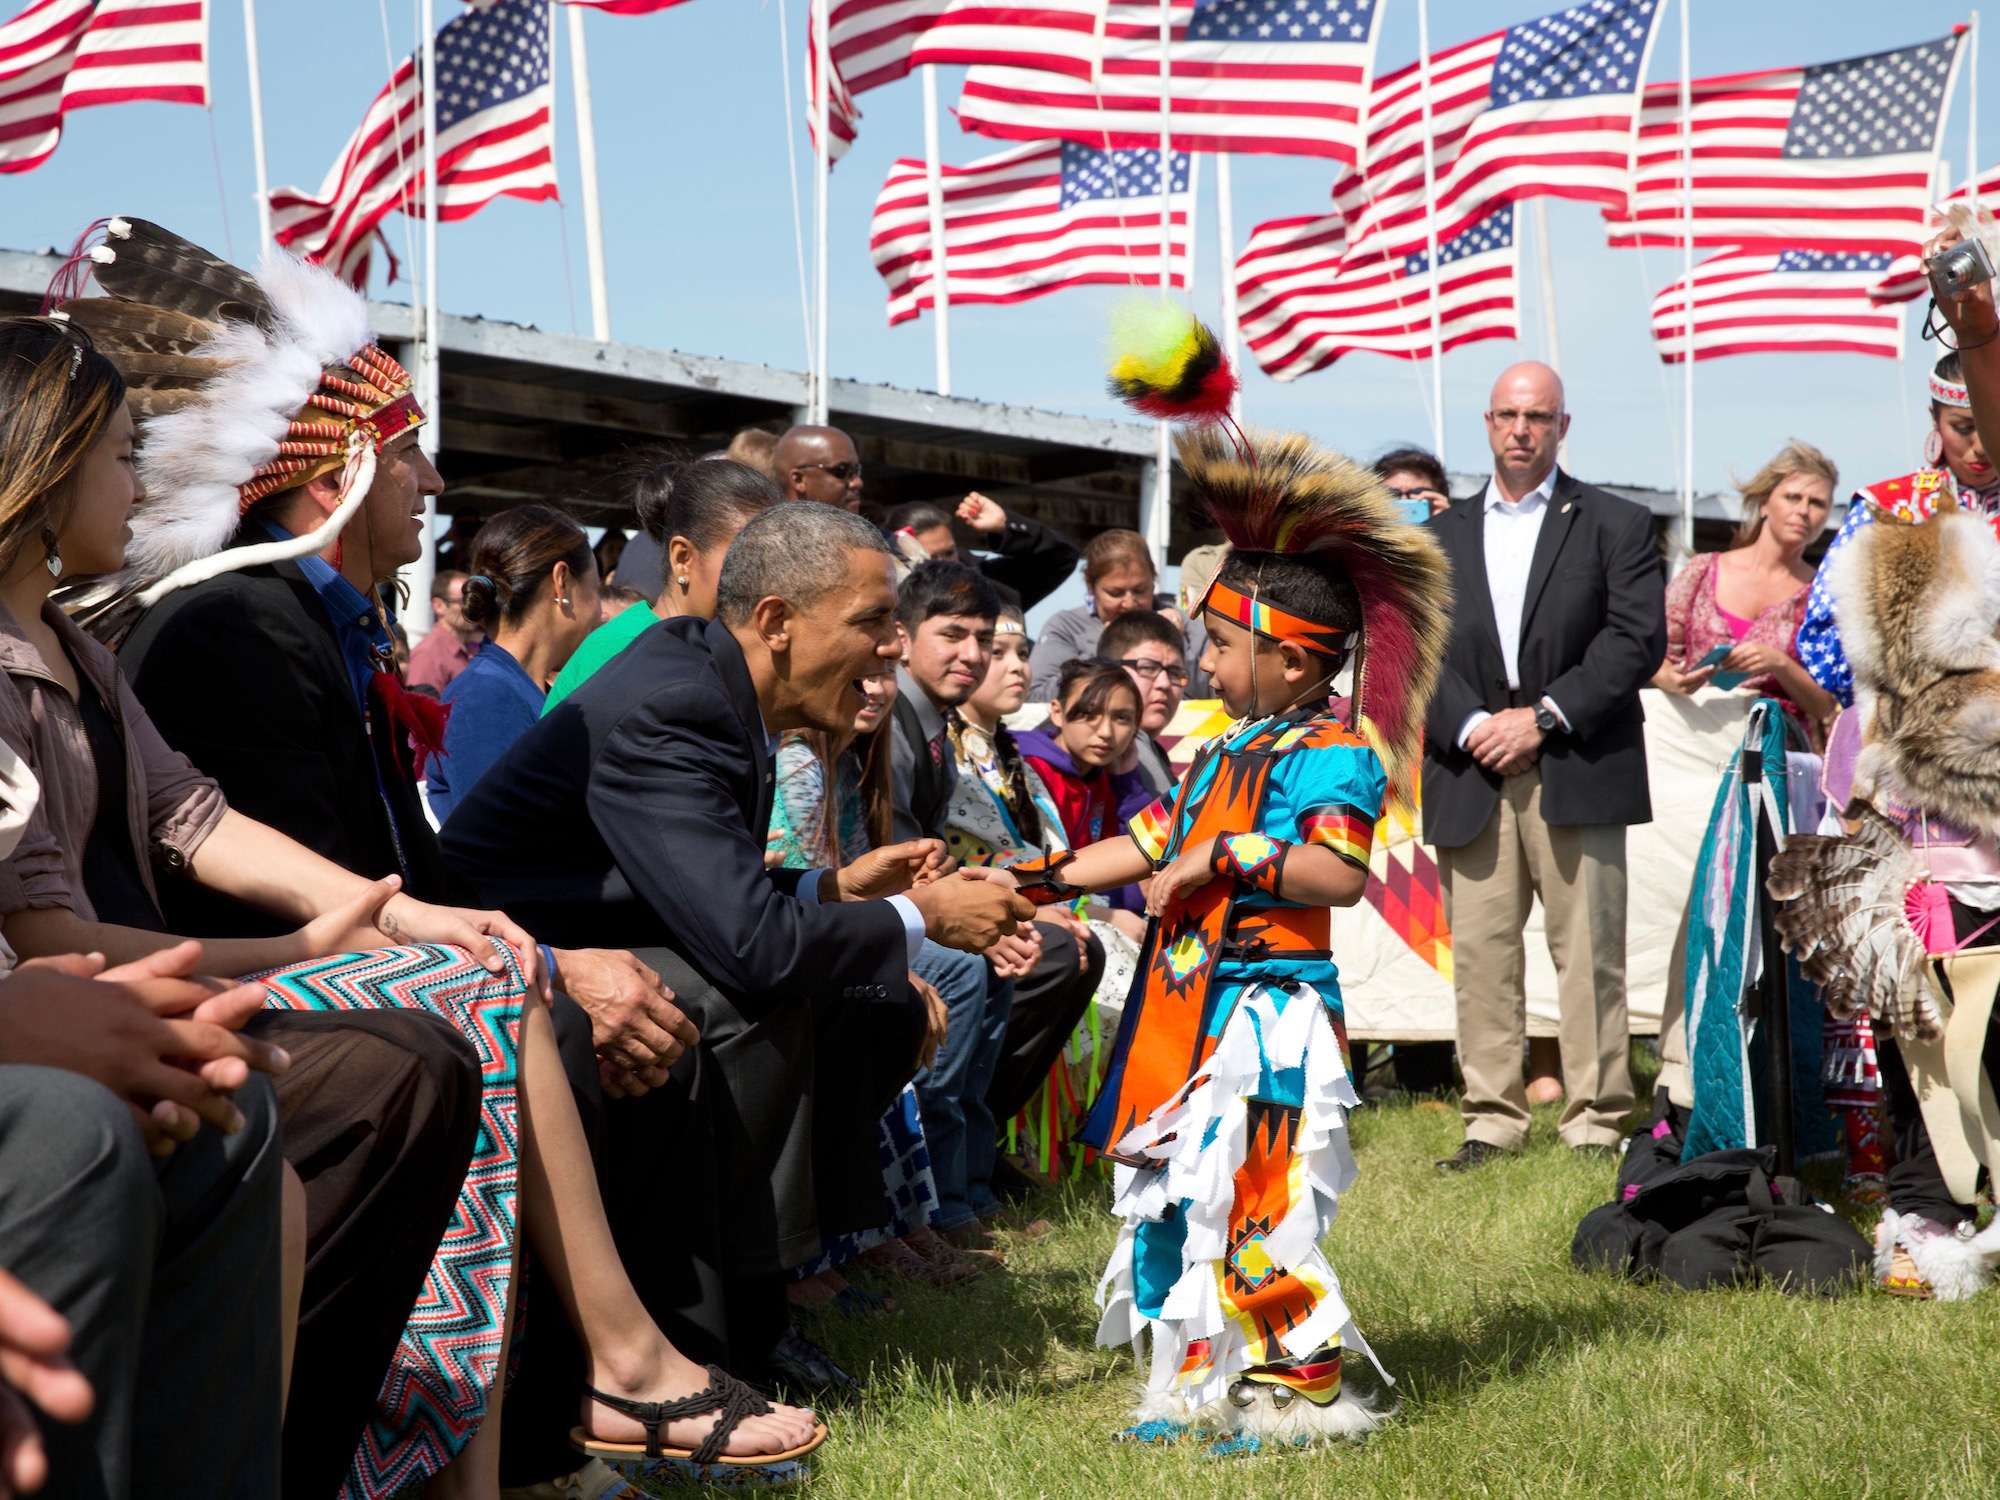 Matthew Fletcher: Obama joins tribes on the right side of history